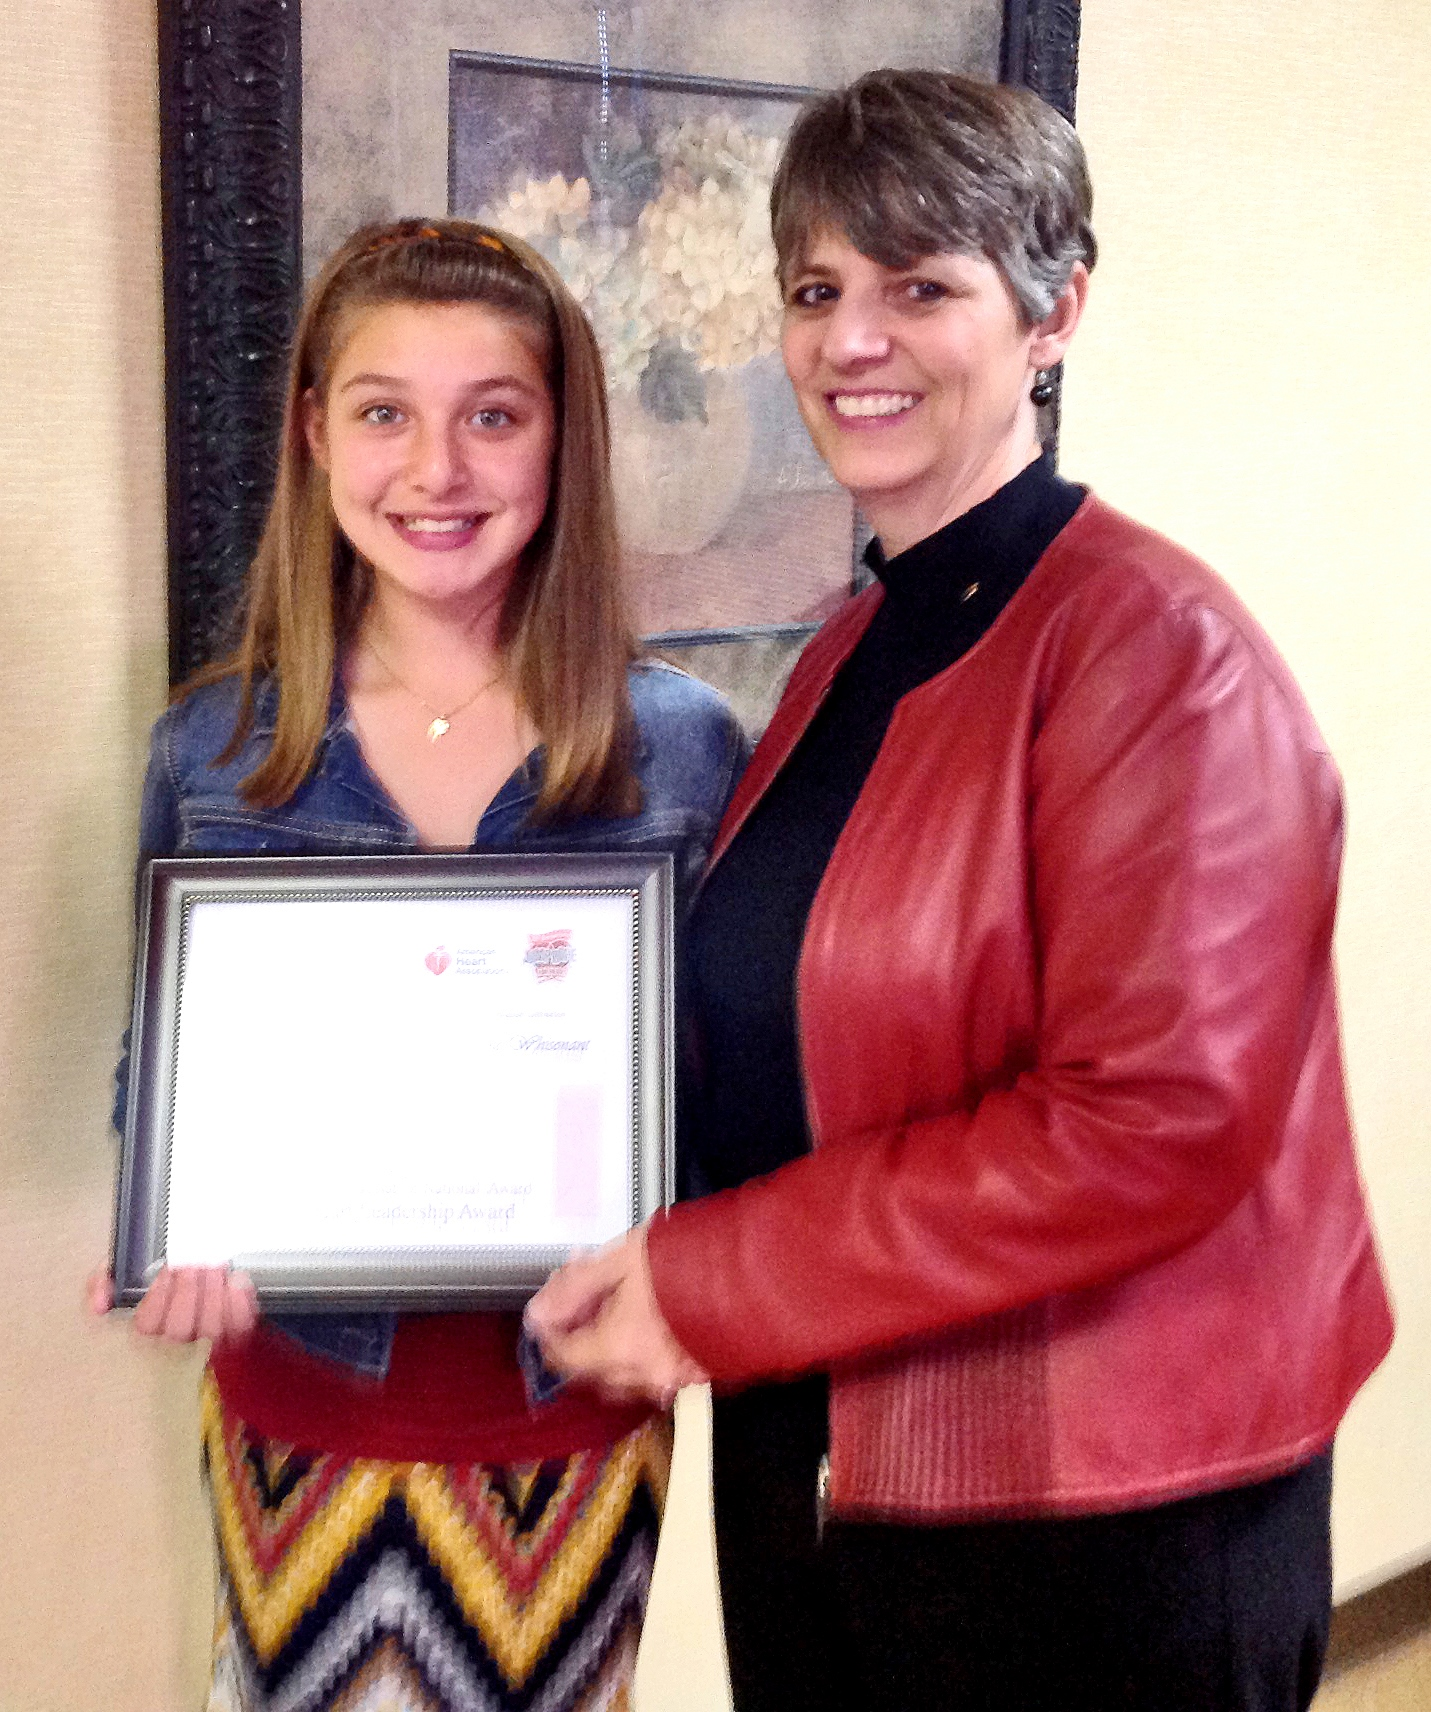 Louisiana 4-H'er wins national Heart Association award